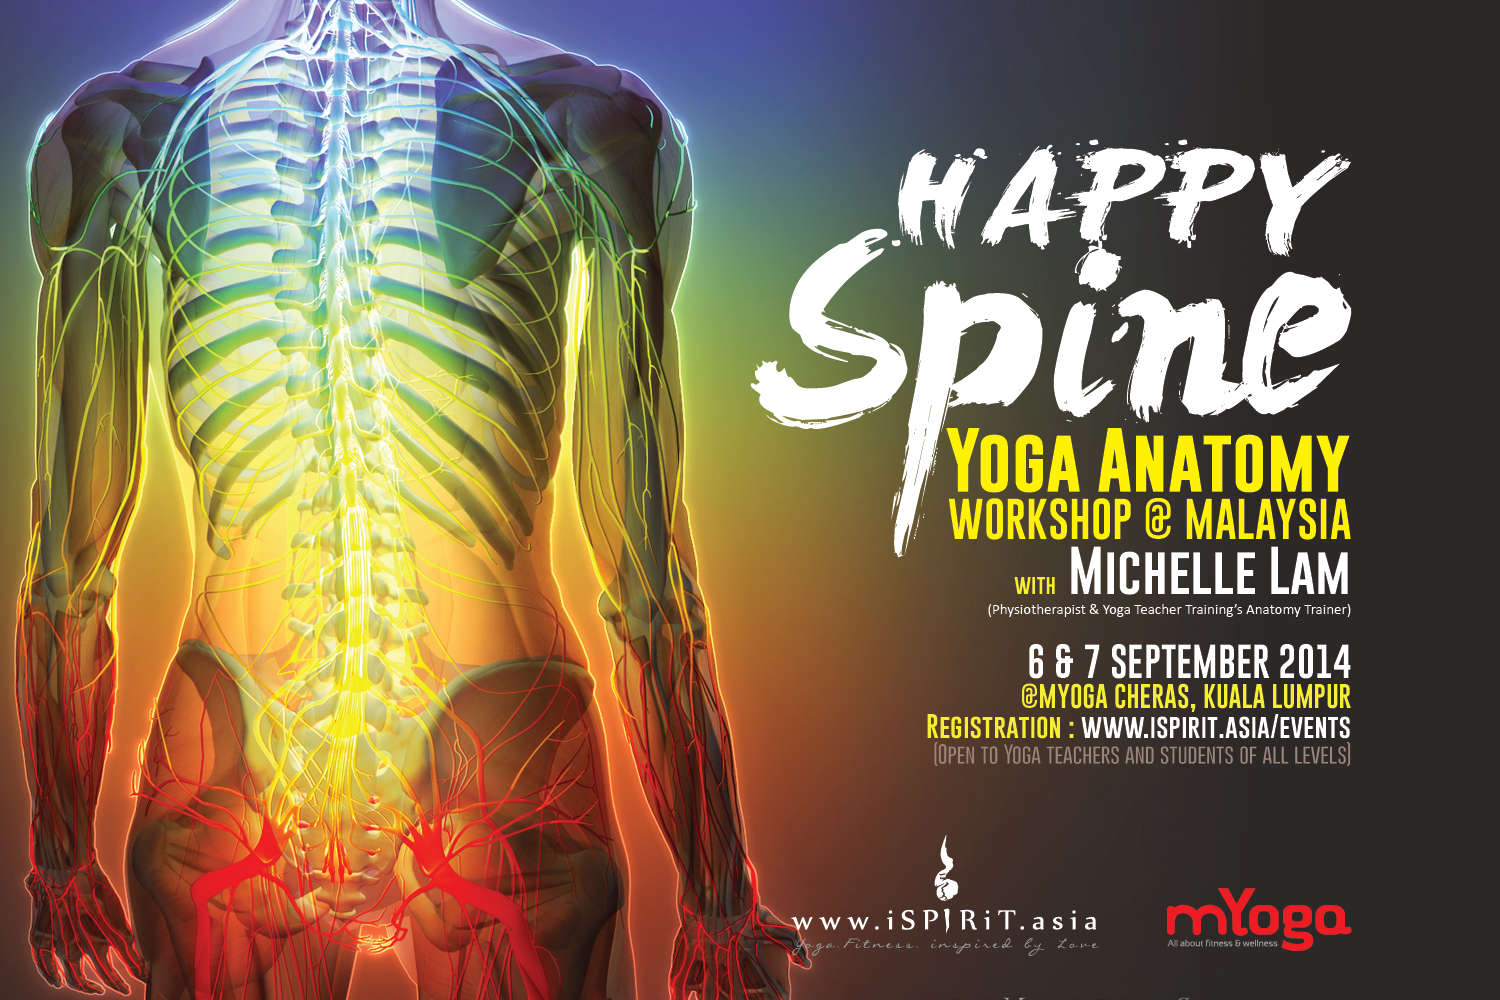 06&07 September 2014 @ Malaysia; Happy Spine~ Yoga Anatomy Workshop ...